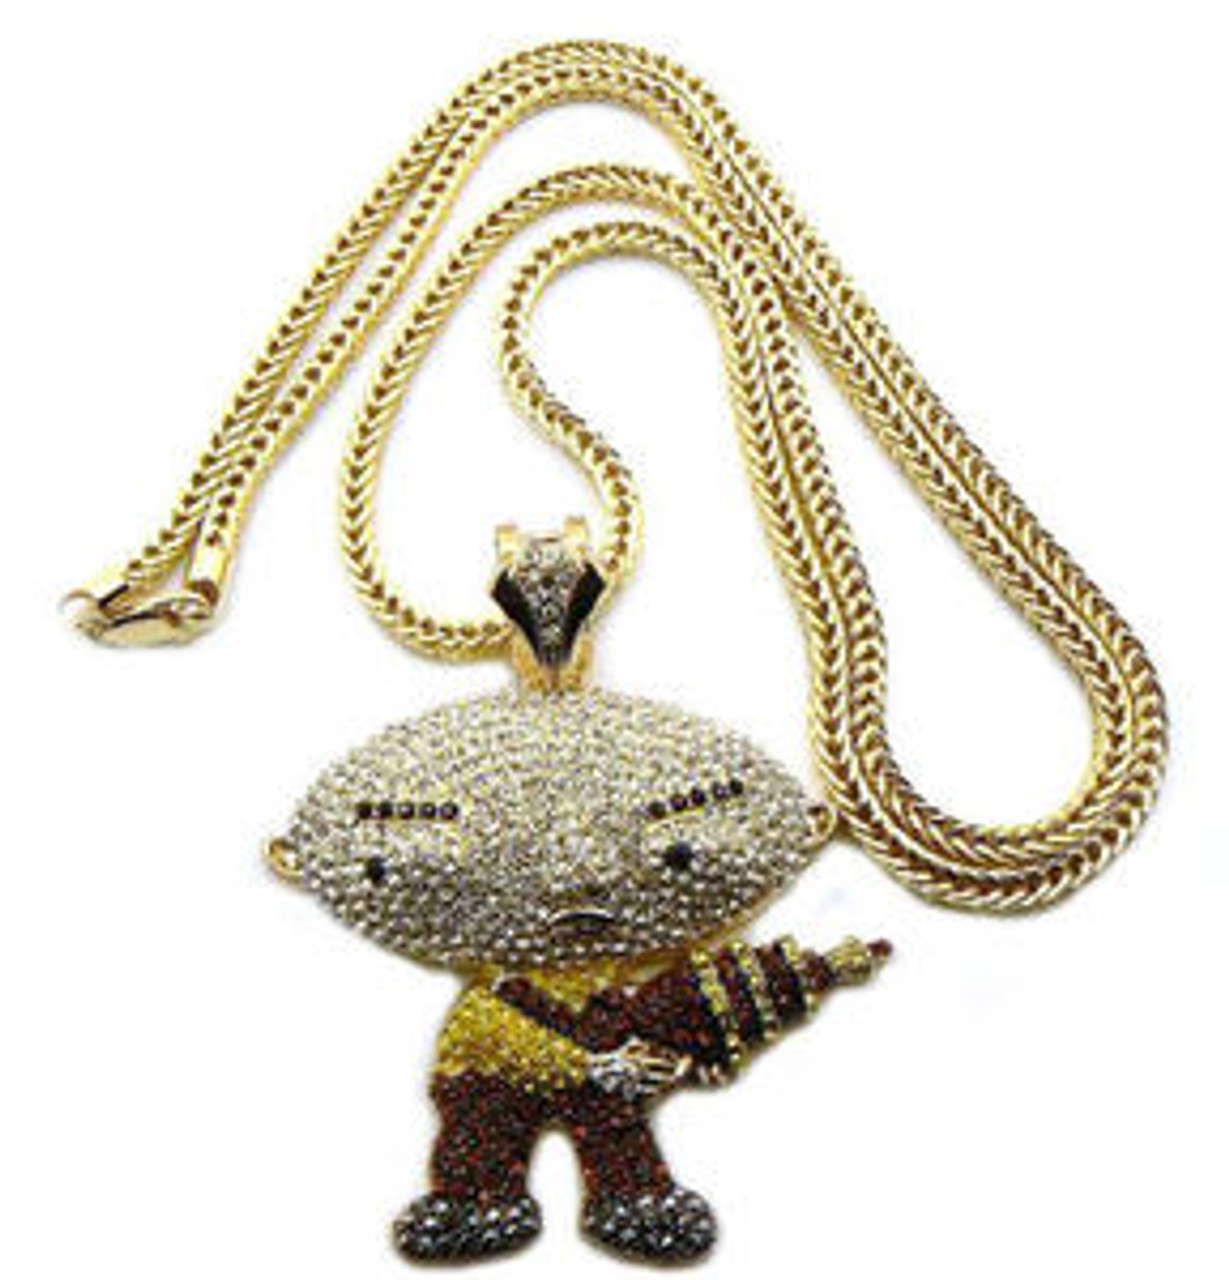 Iced out stewie pendant franco chain wgun 36 chain the iced out stewie pendant franco chain wgun 36 chain aloadofball